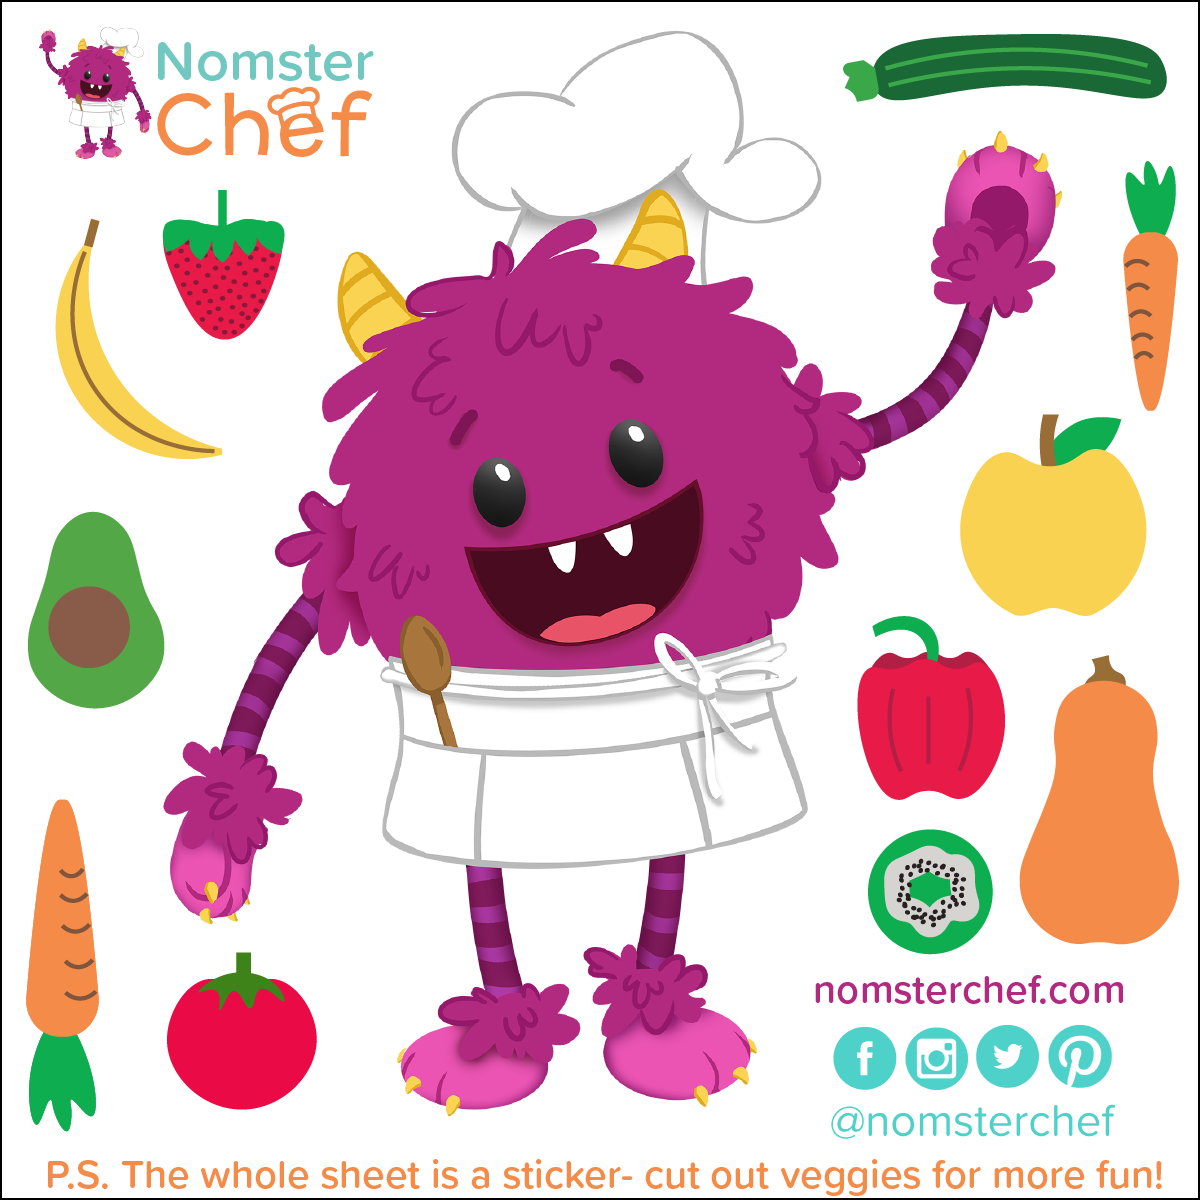 nomster chef kiss cut 4 inch stickers_with %22cut me%22 message-01.png